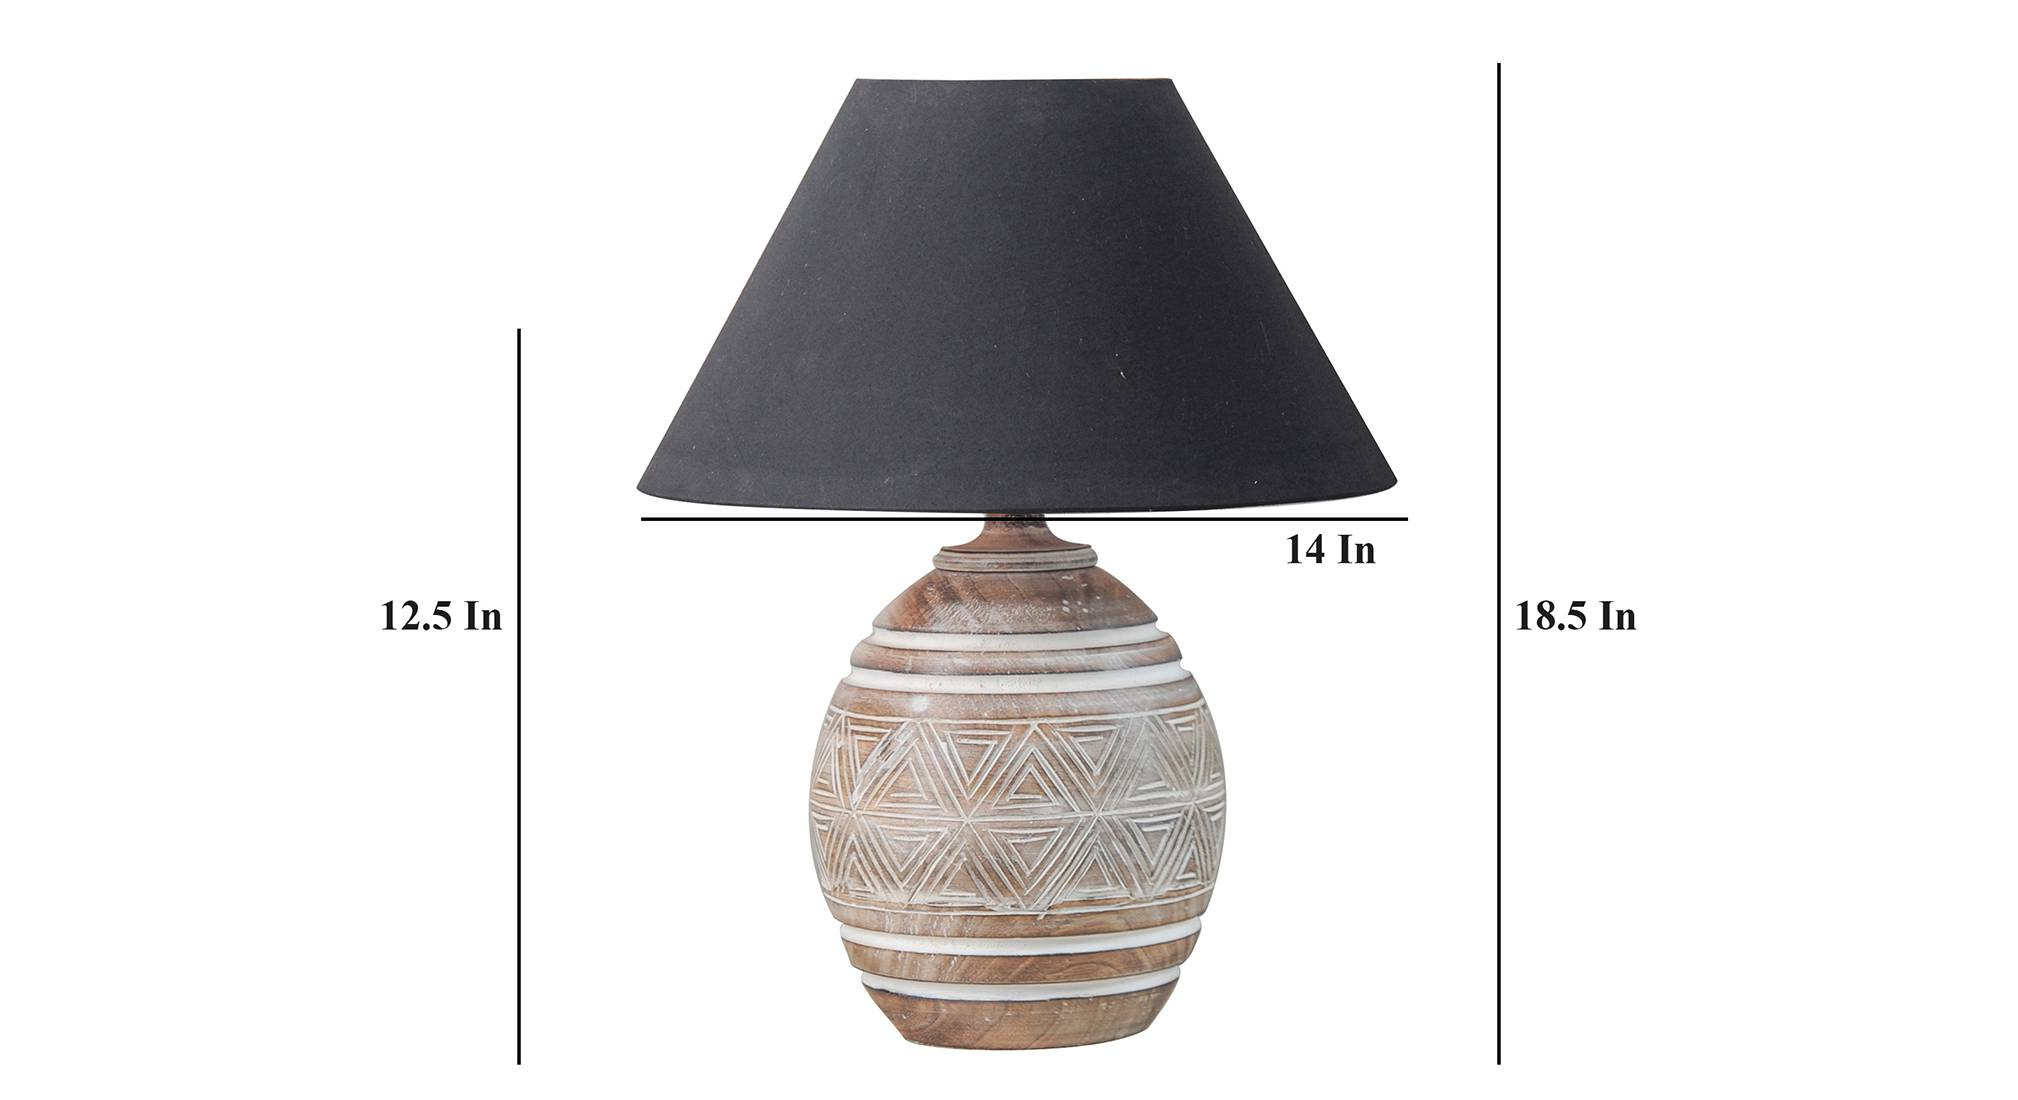 Levery bk table lamp 5